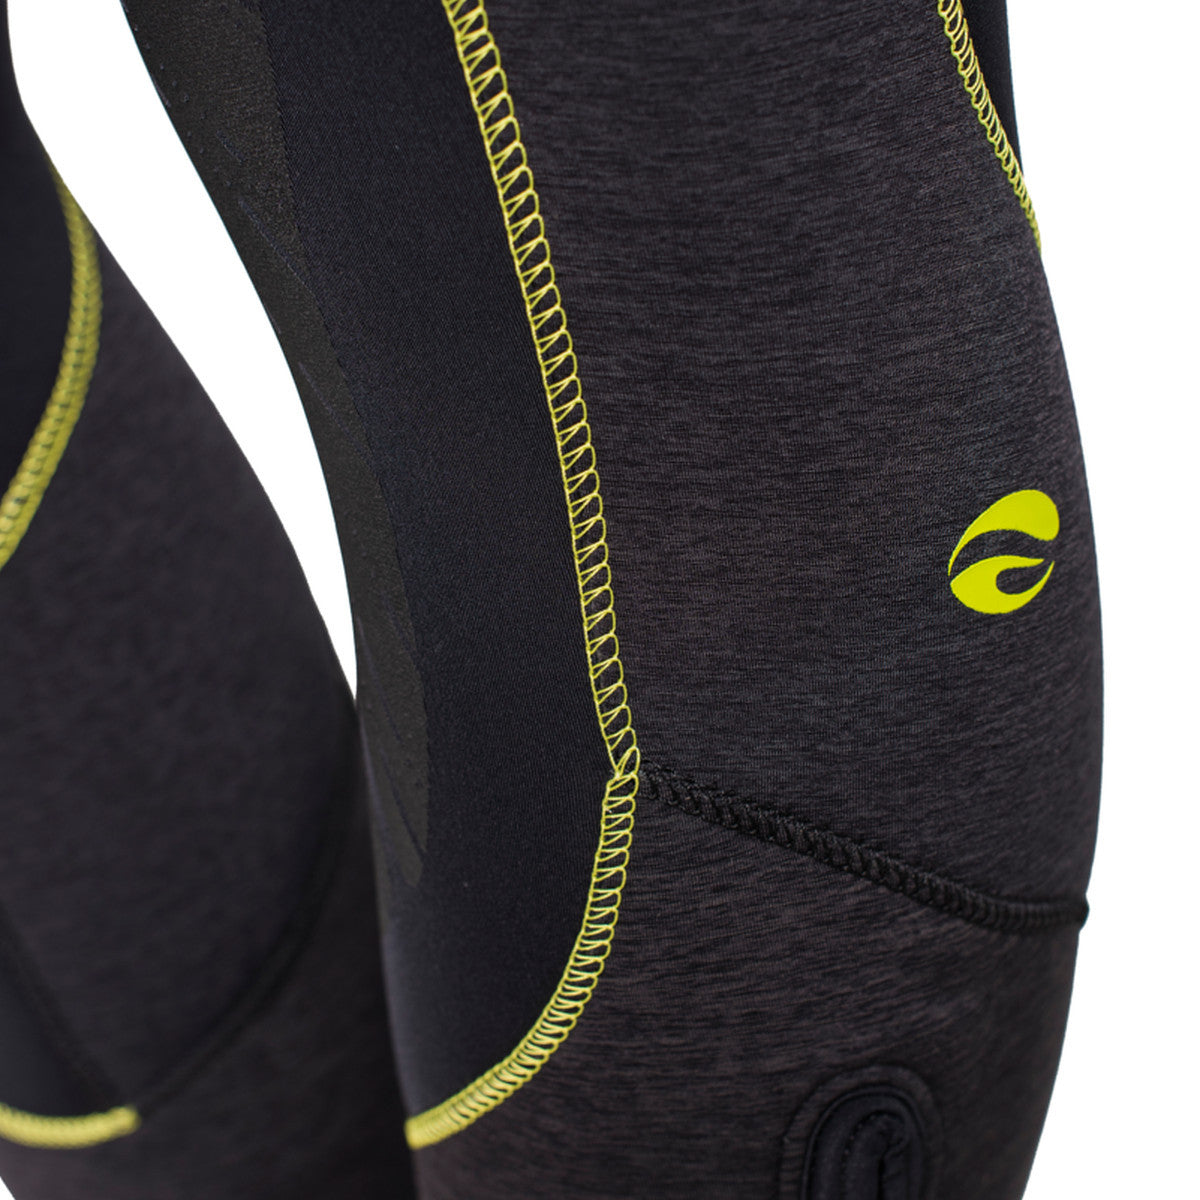 Bare Evoke 7mm Wetsuit: Womens - Oyster Diving Shop - 9